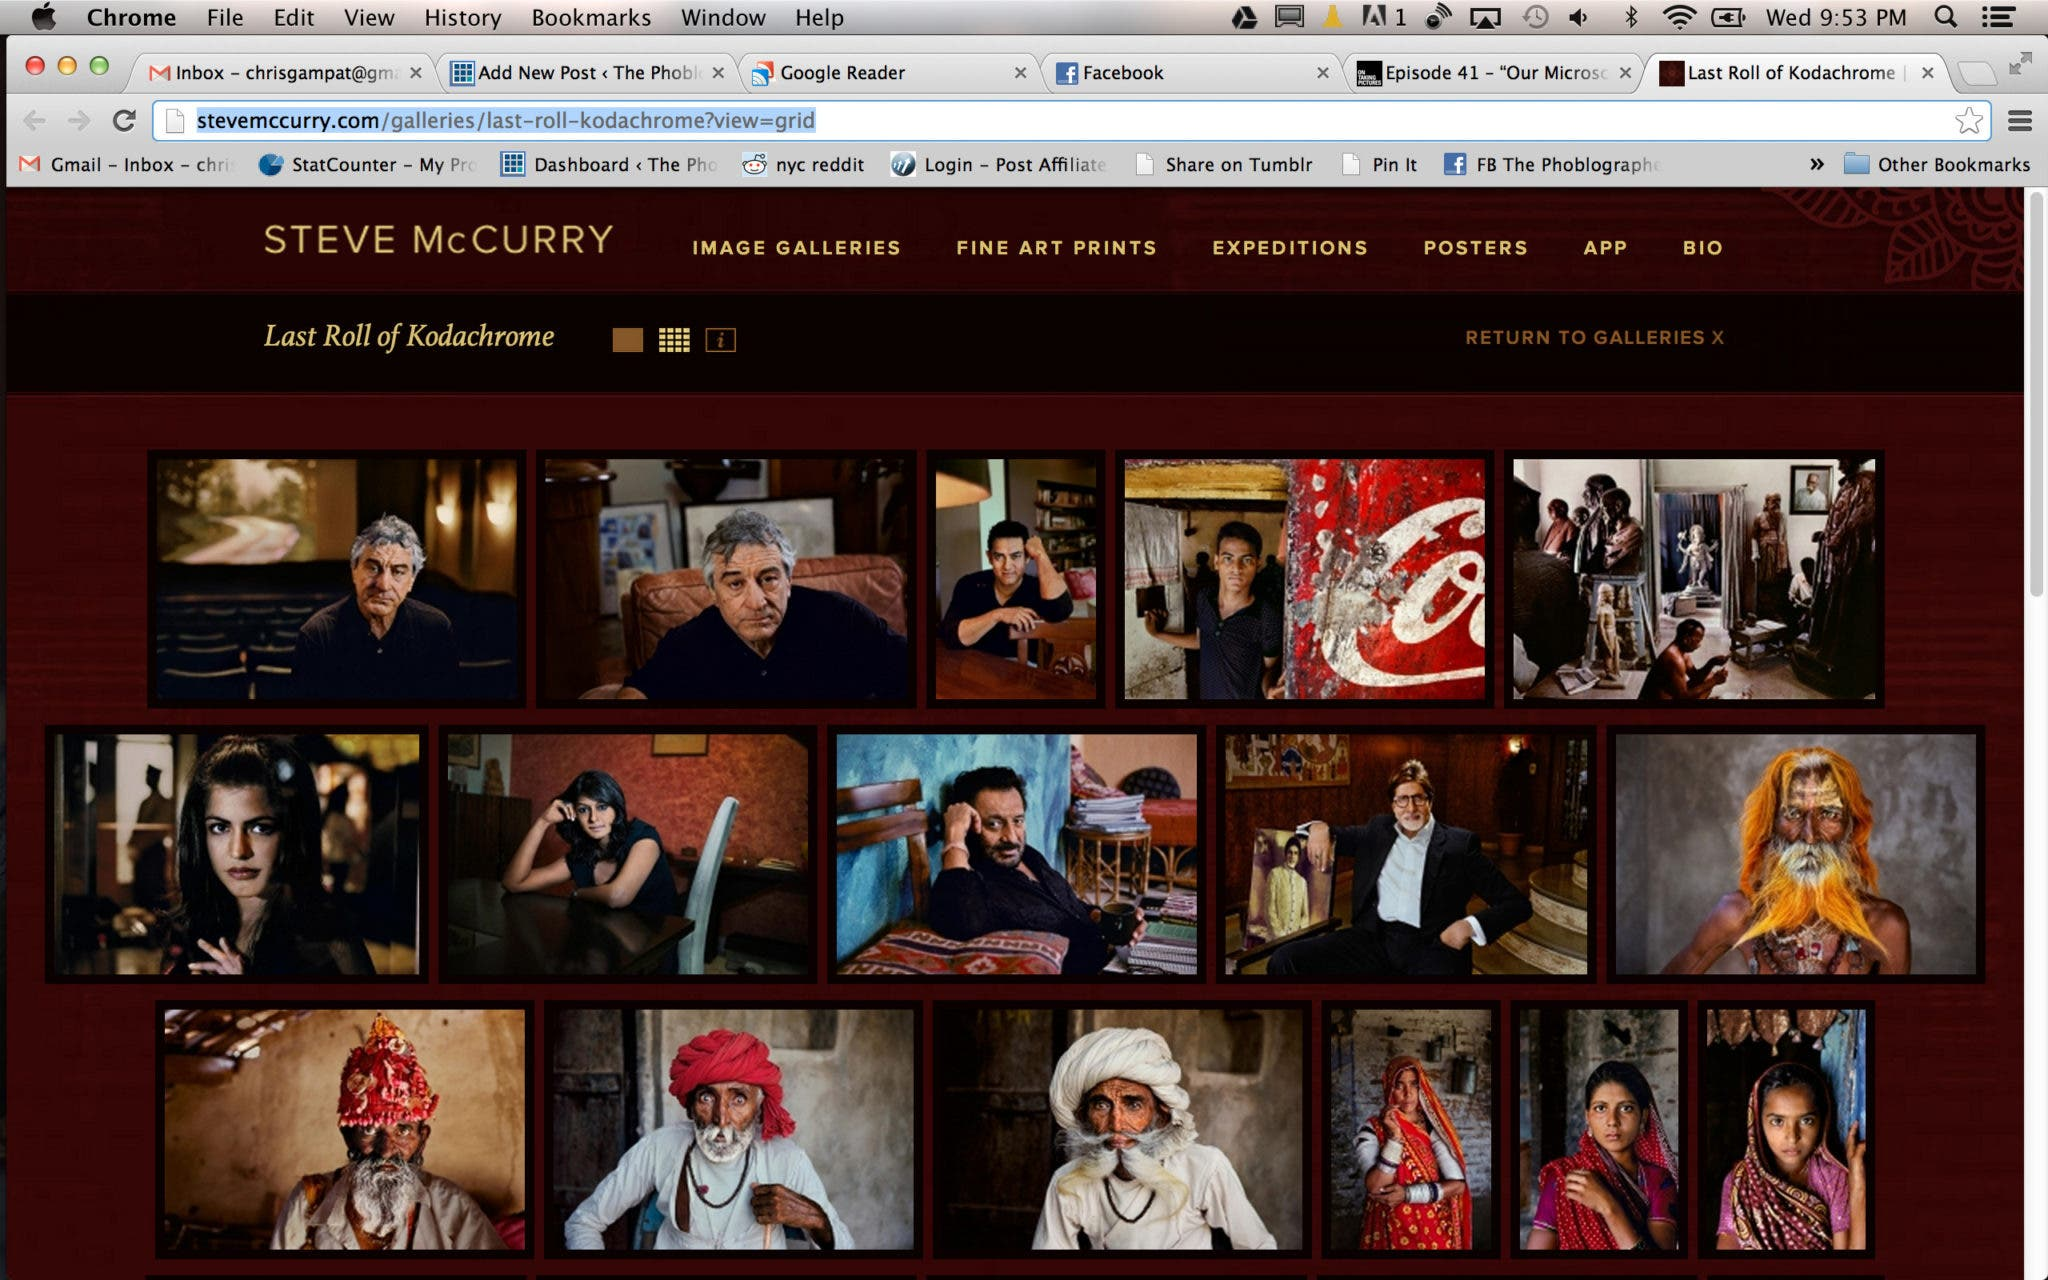 Most of the Photos from Steve McCurry's Last Roll of Kodachrome Are Now Live